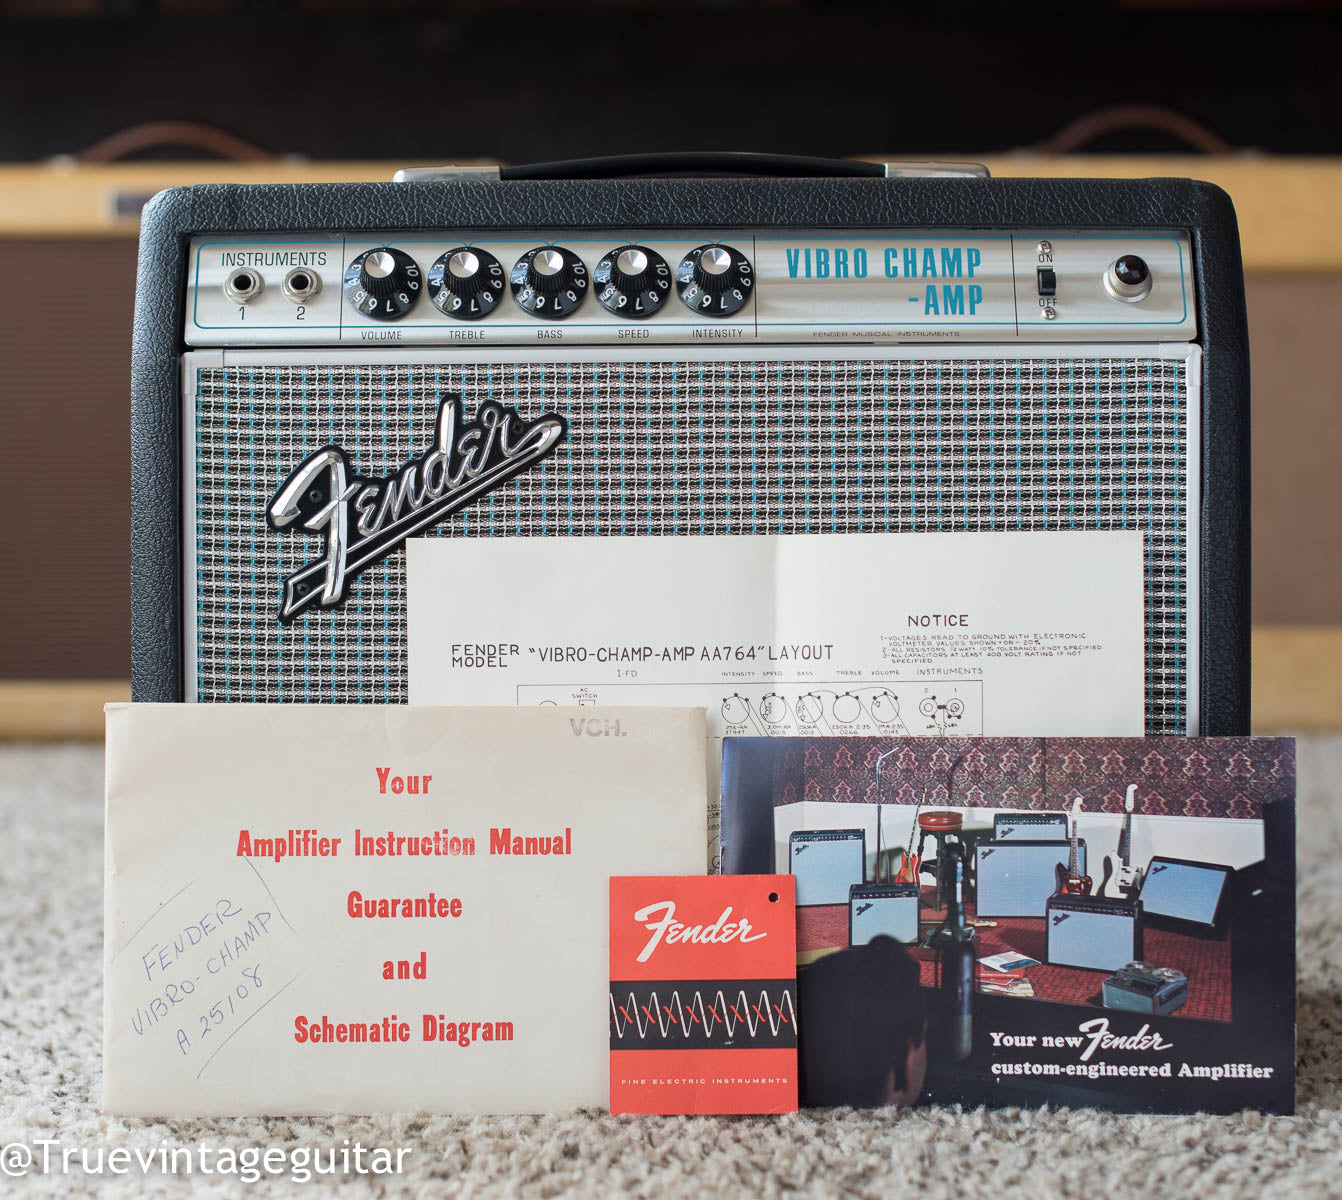 Original Fender amplifier instruction manual, schematic, Tolex tag, 1968 Fender Vibro Champ amp